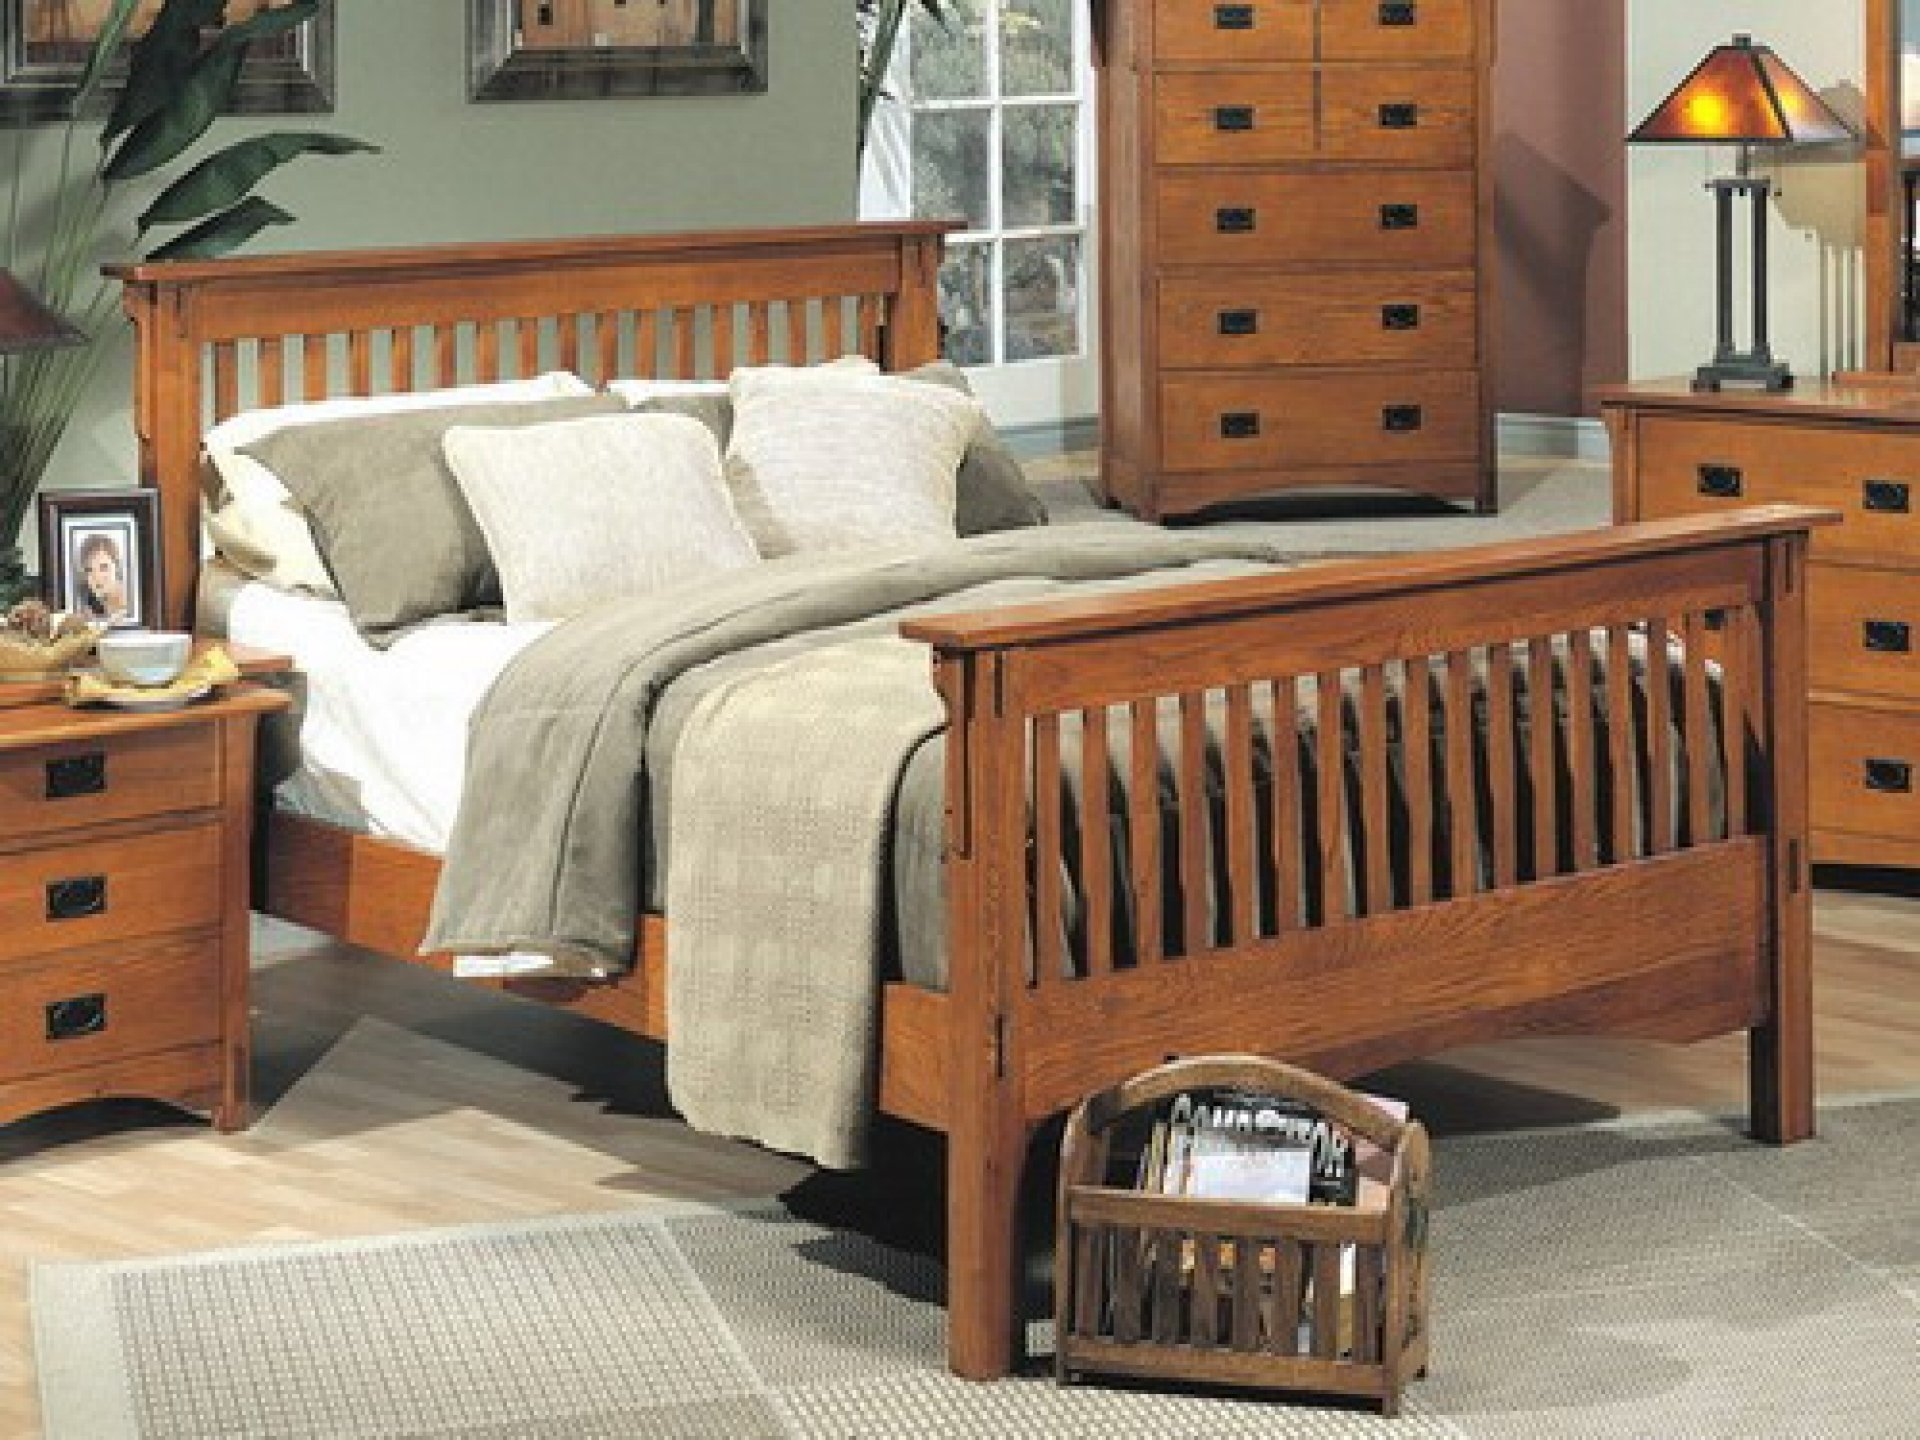 bedroom furniture plans how to build a wooden bed frame 22 interesting ways 10473